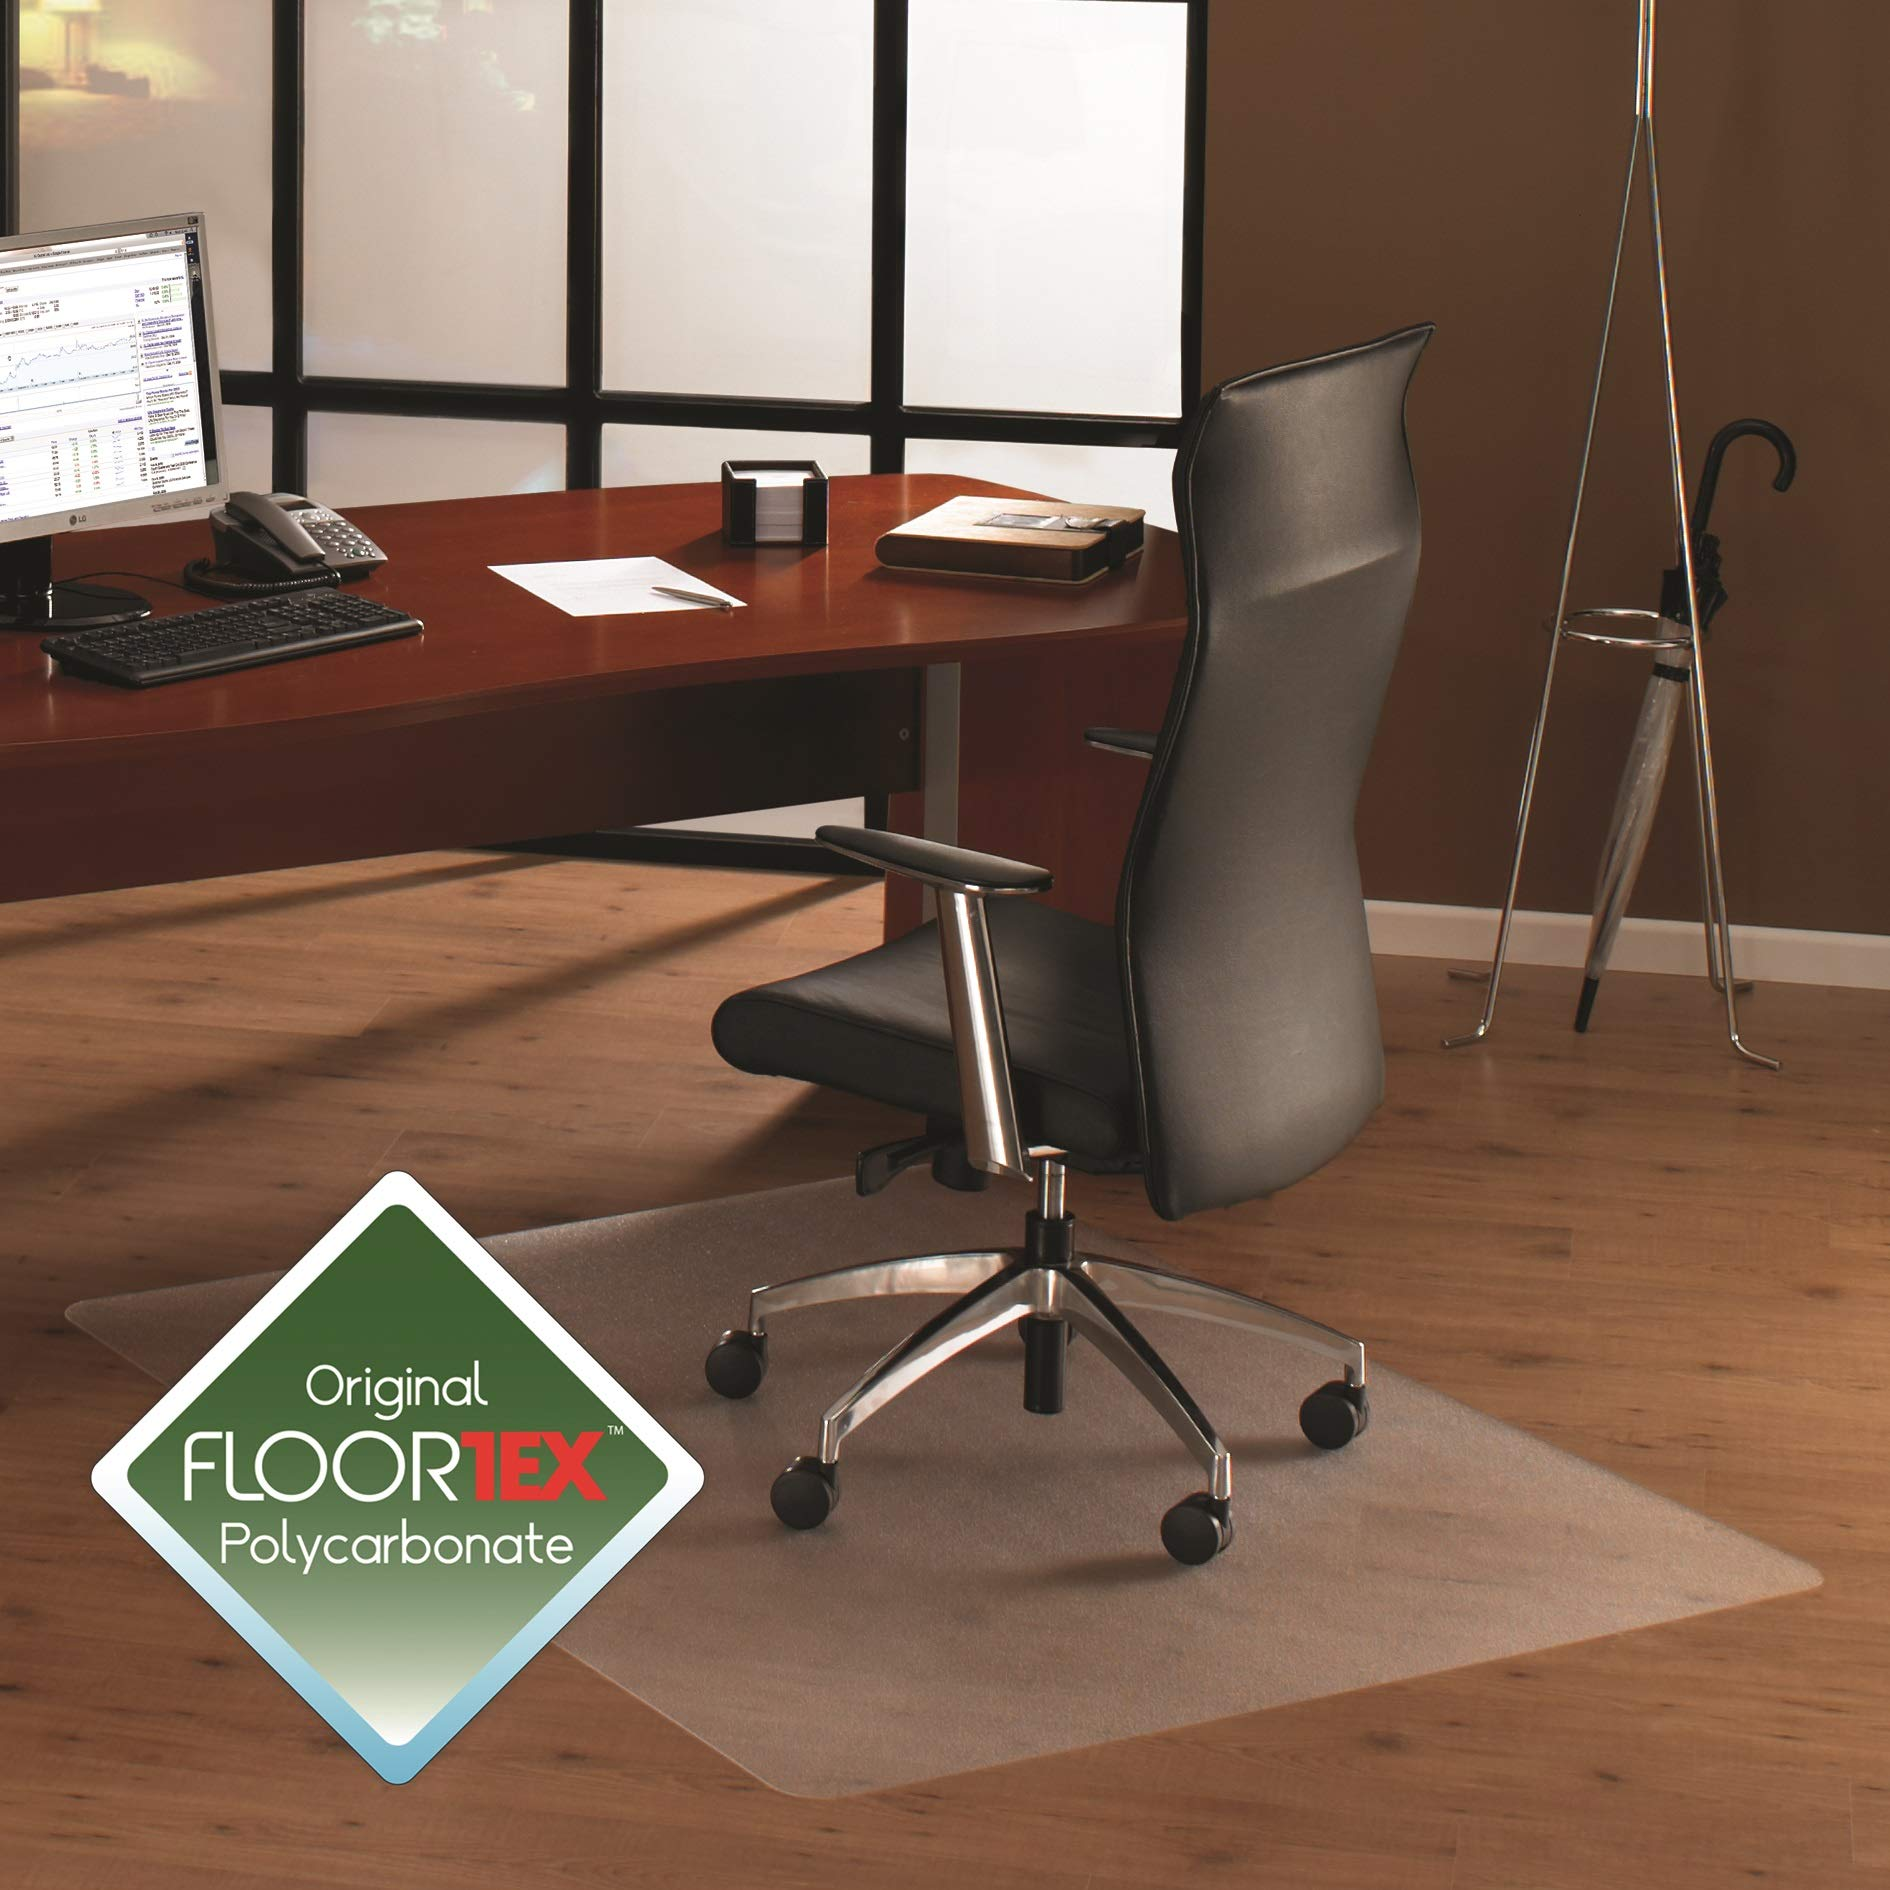 Floortex Cleartex Ultimat Polycarbonate Chair Mat for Hard Floors/Carpet Tile, 48'' x 48'', Square, Clear (1212119ER) by Floortex